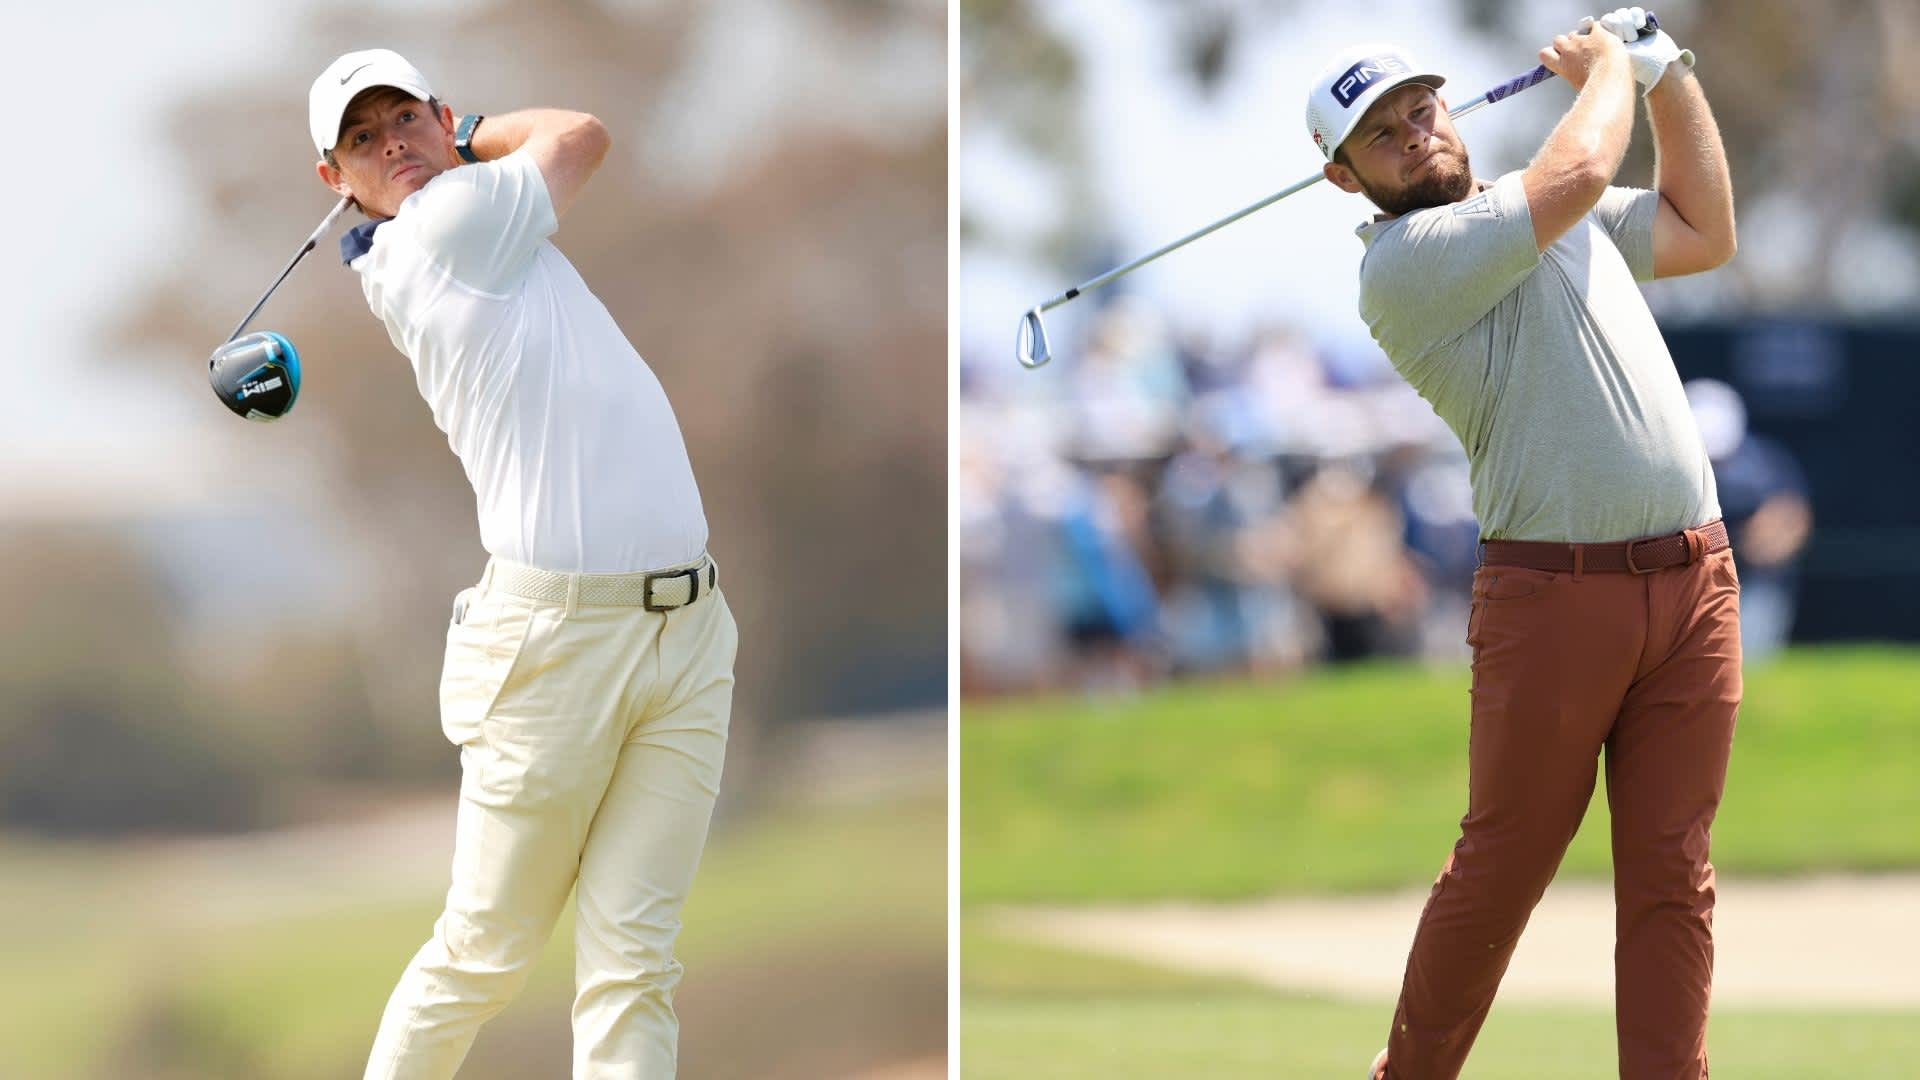 PGA Tour: Rory McIlroy and Tyrrell Hatton are at T11 after opening at the U.S. Open